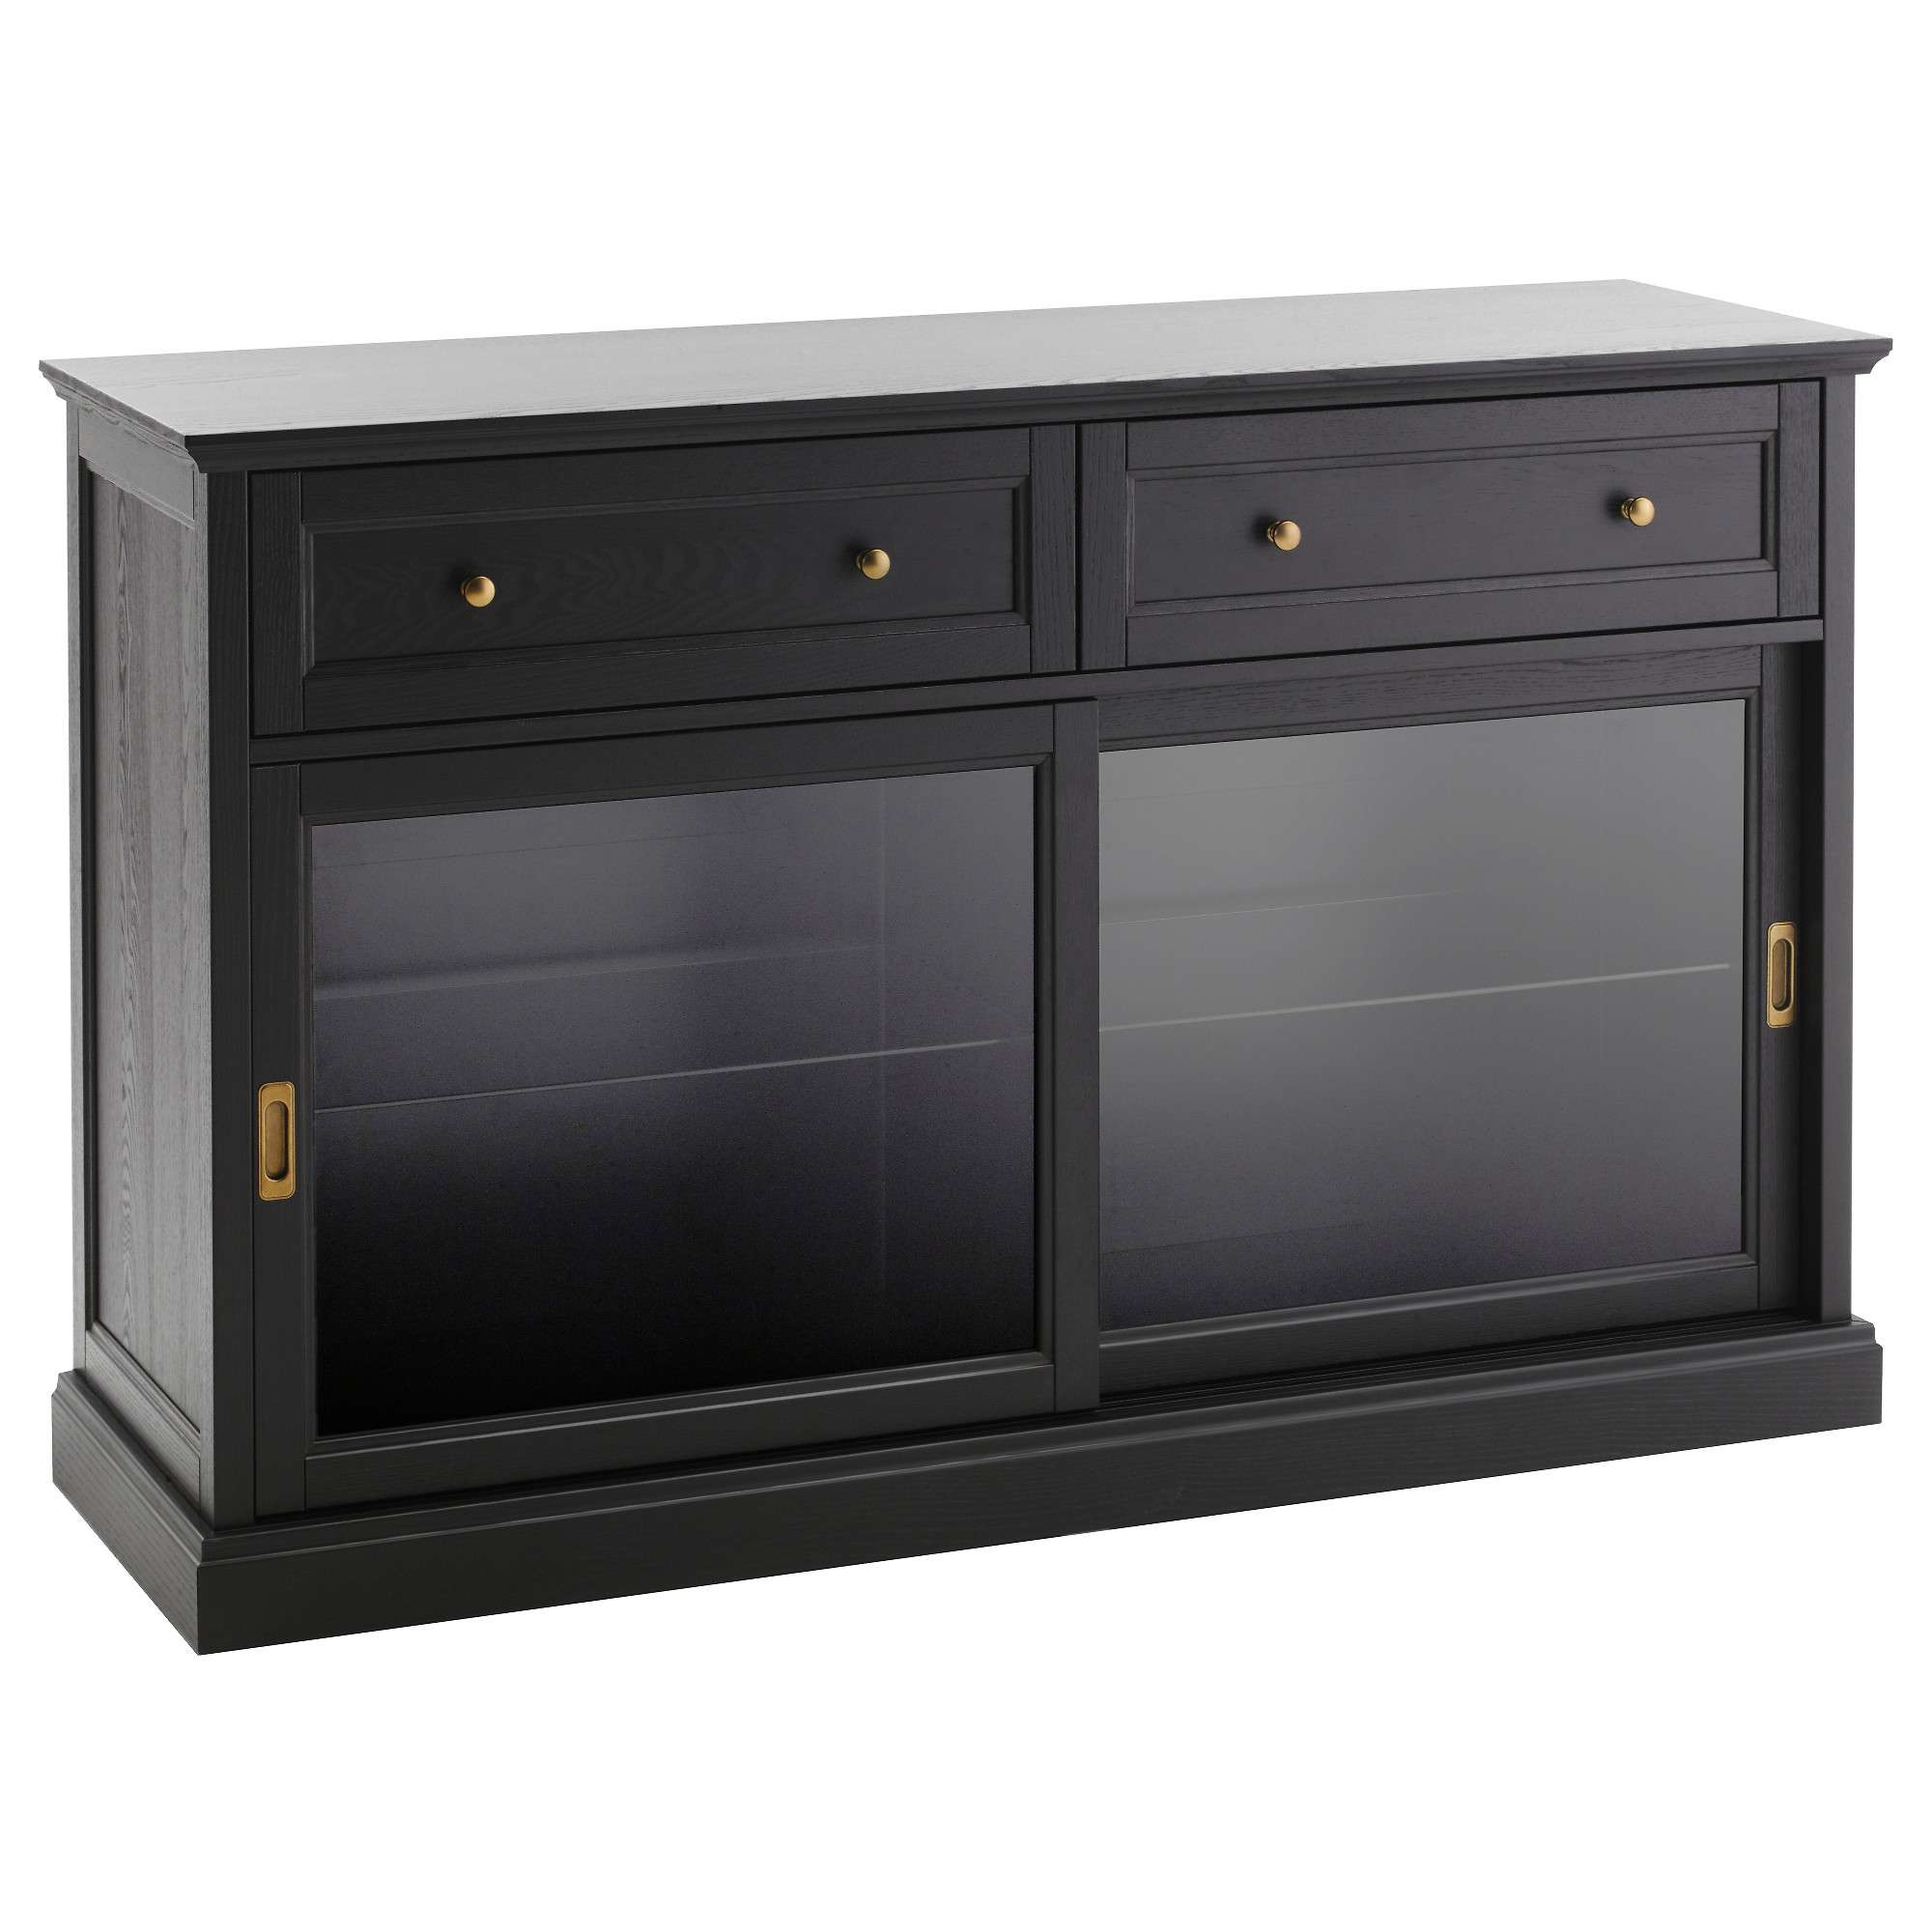 Malsjö Sideboard Basic Unit Black Stained 145X92 Cm – Ikea Inside Glass Door Buffet Sideboards (View 12 of 20)